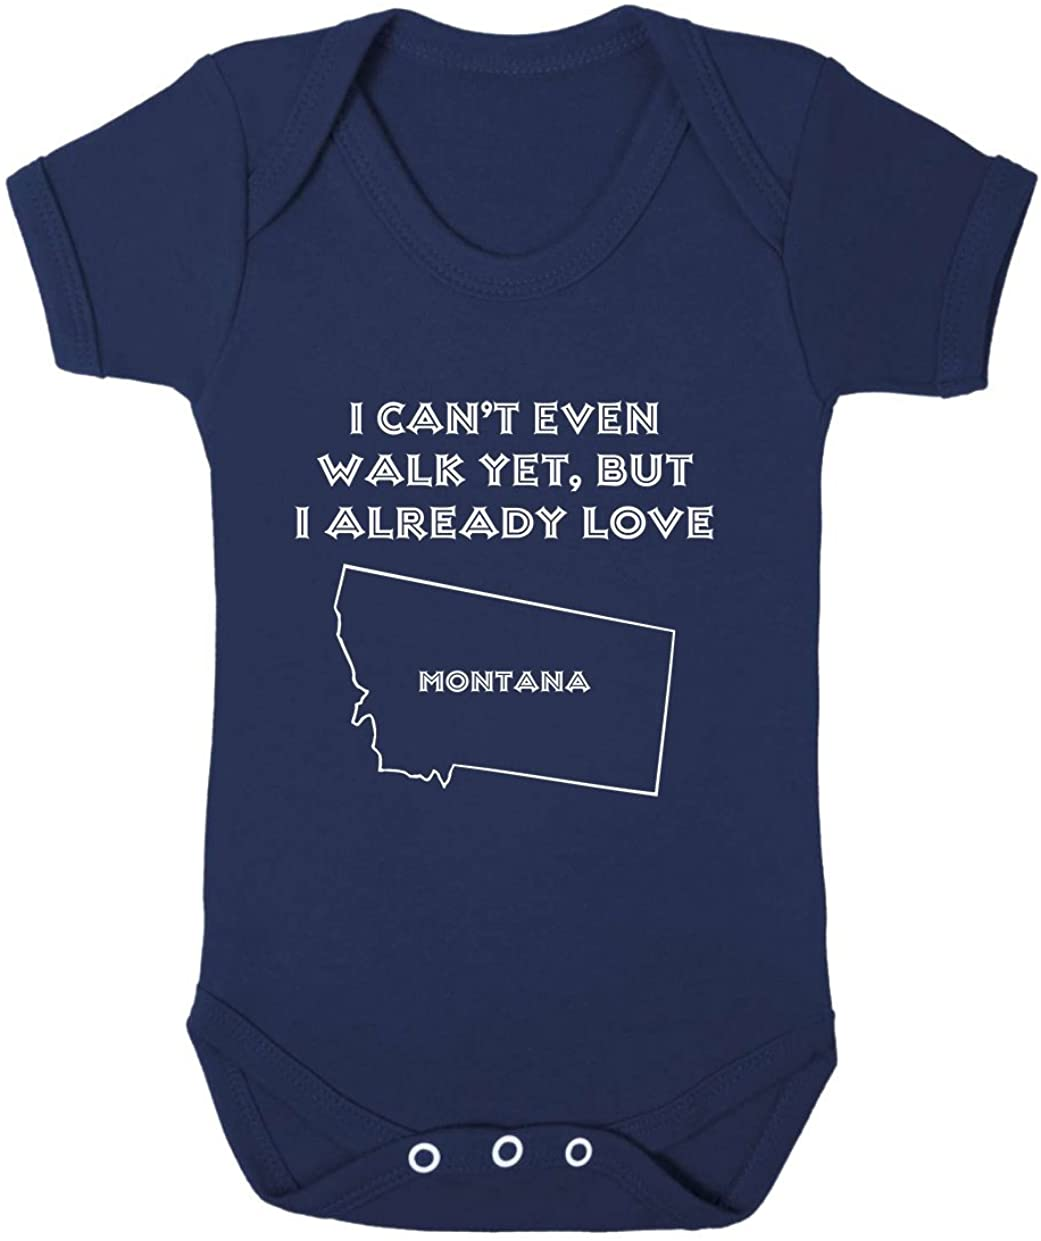 I Can't Even Walk Yet But I Already Love Montana Baby Bodysuit One Piece Navy 6 Months